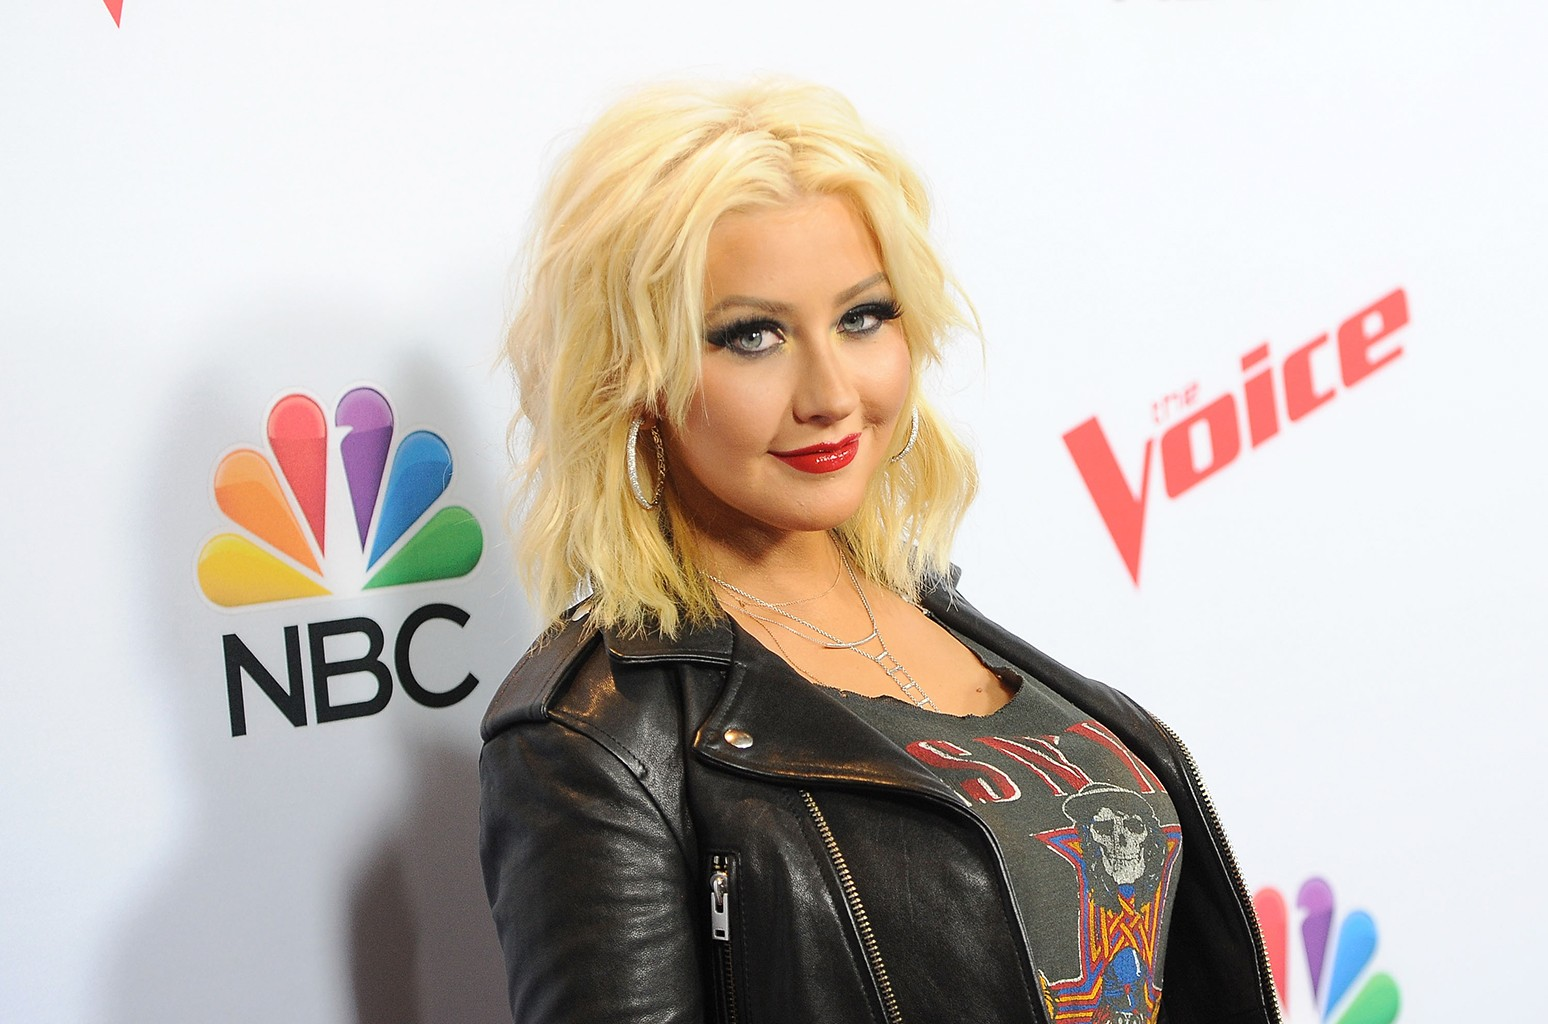 Christina Aguilera arrives at NBC's The Voice red carpet